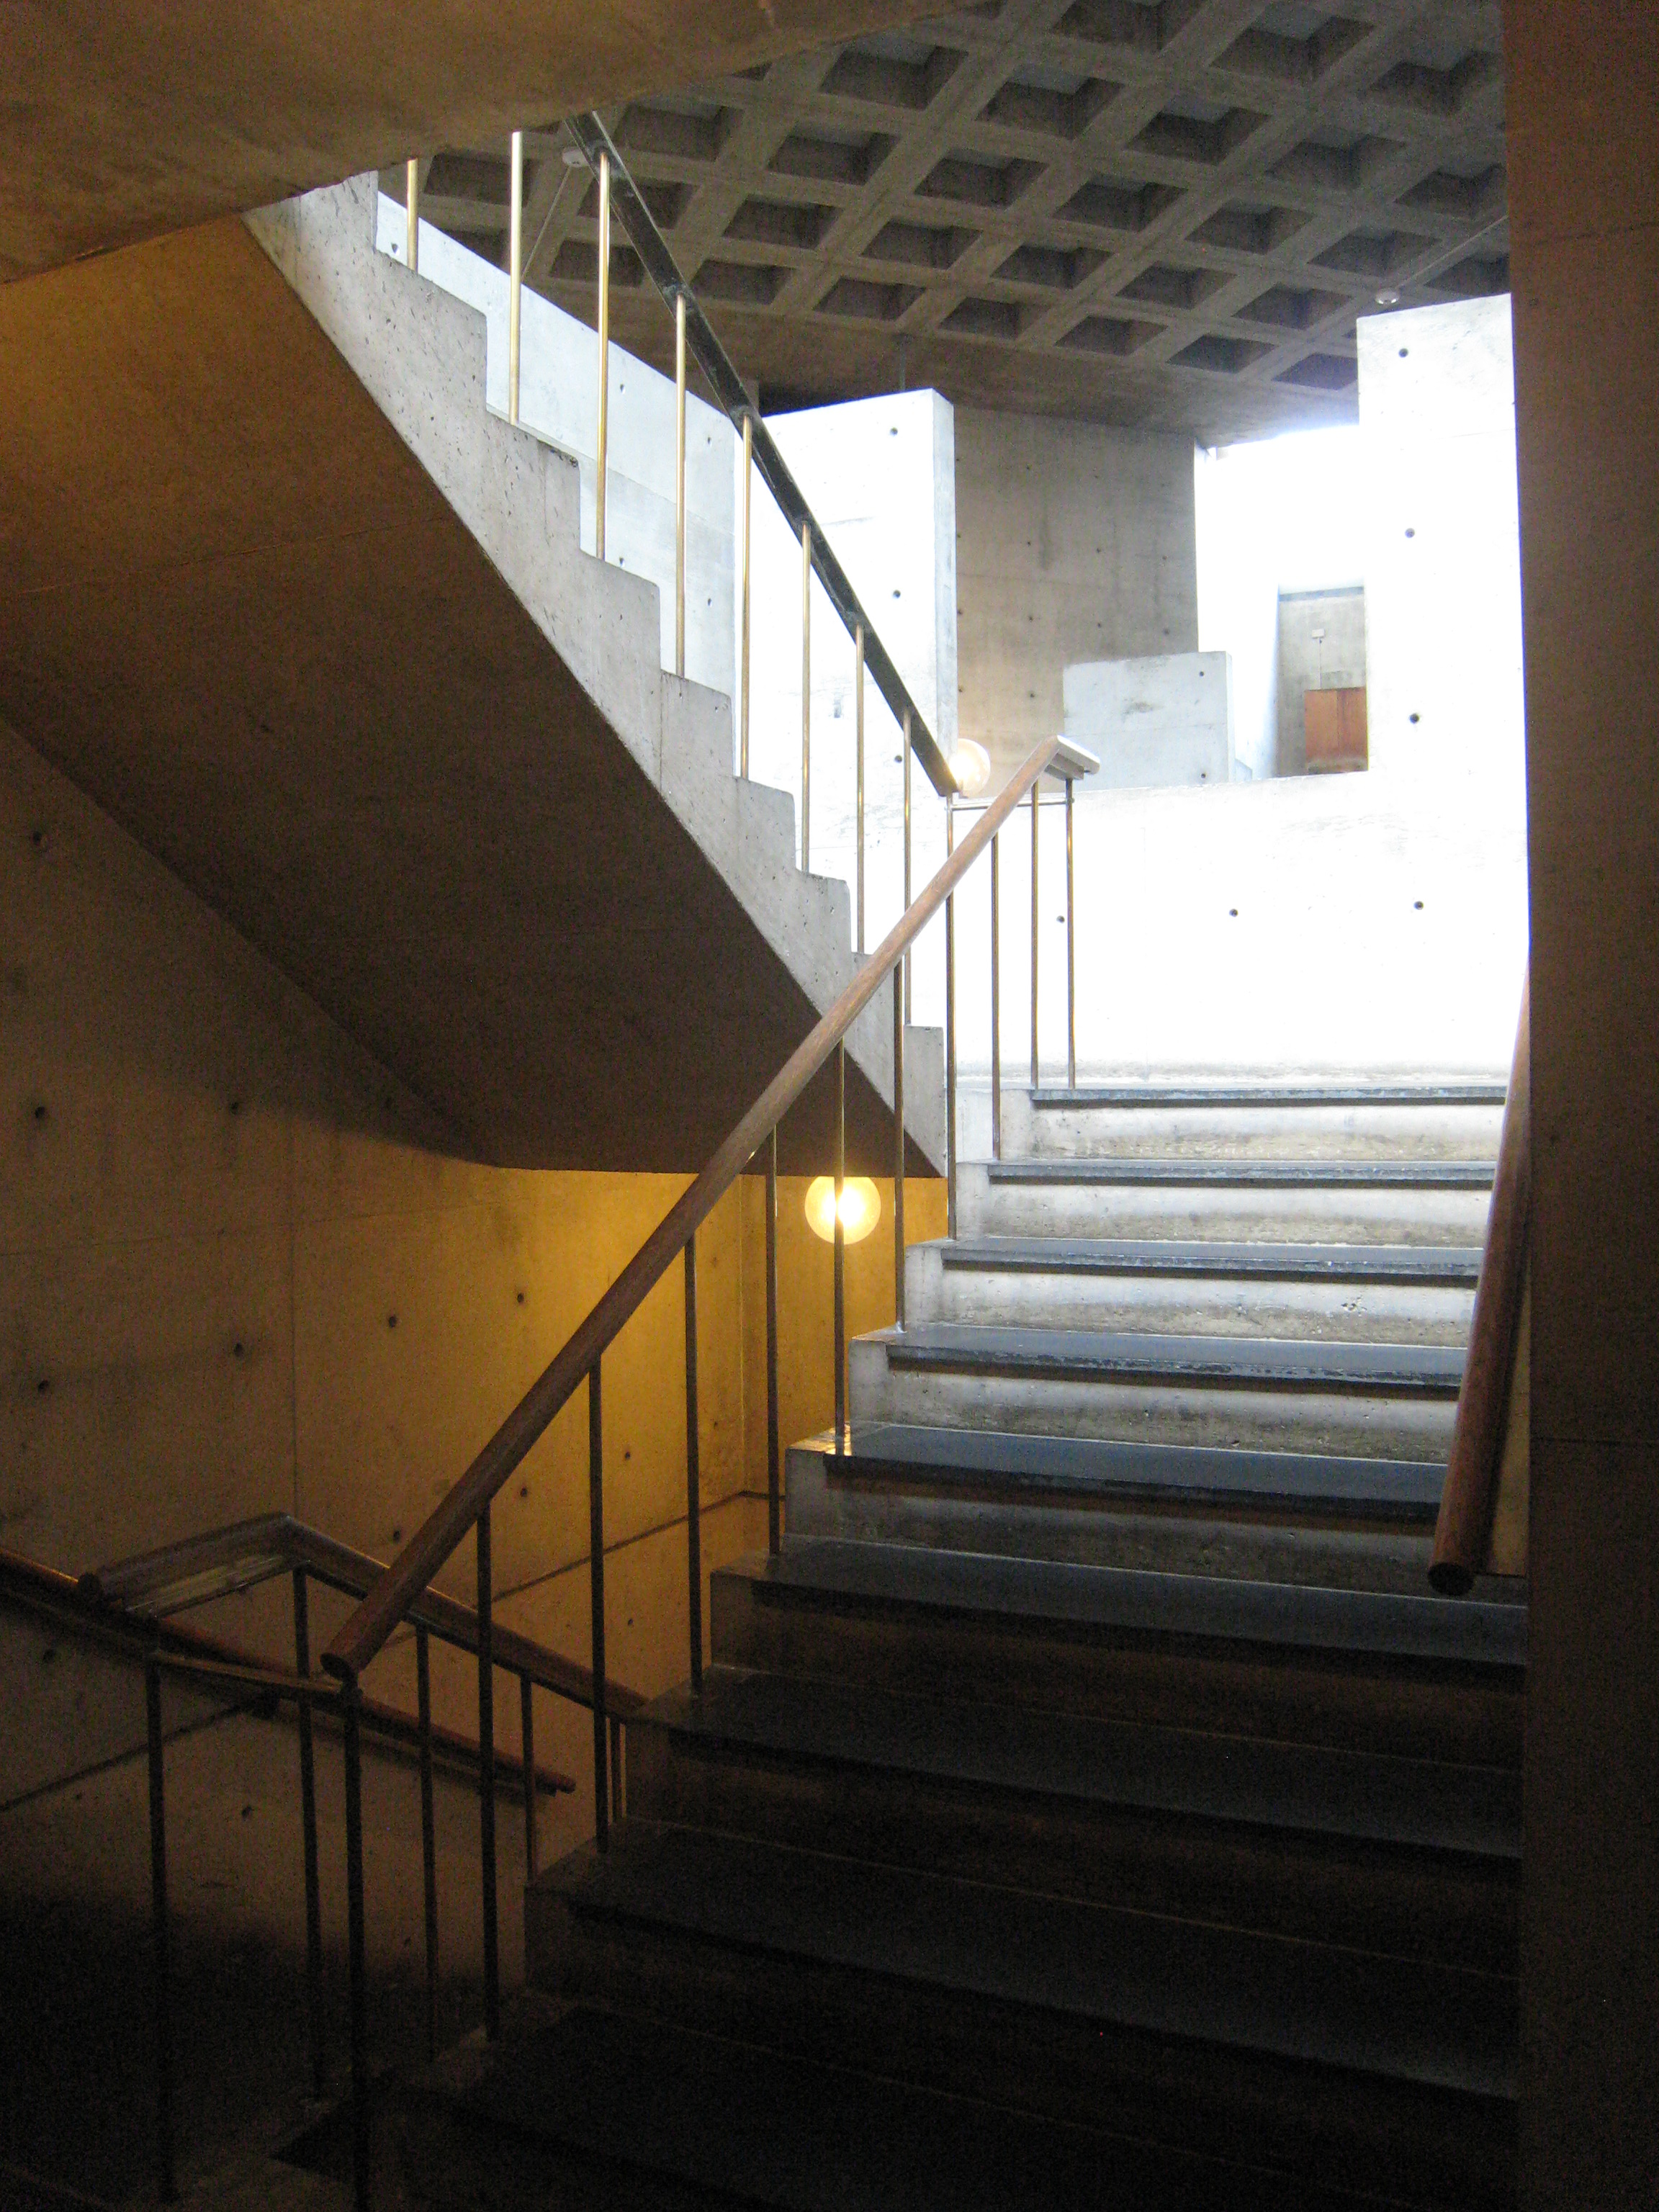 Erdman Hall Dormitory Was Designed By Louis Kahn And Was Completed In 1965.  Download Medium Thumbnail